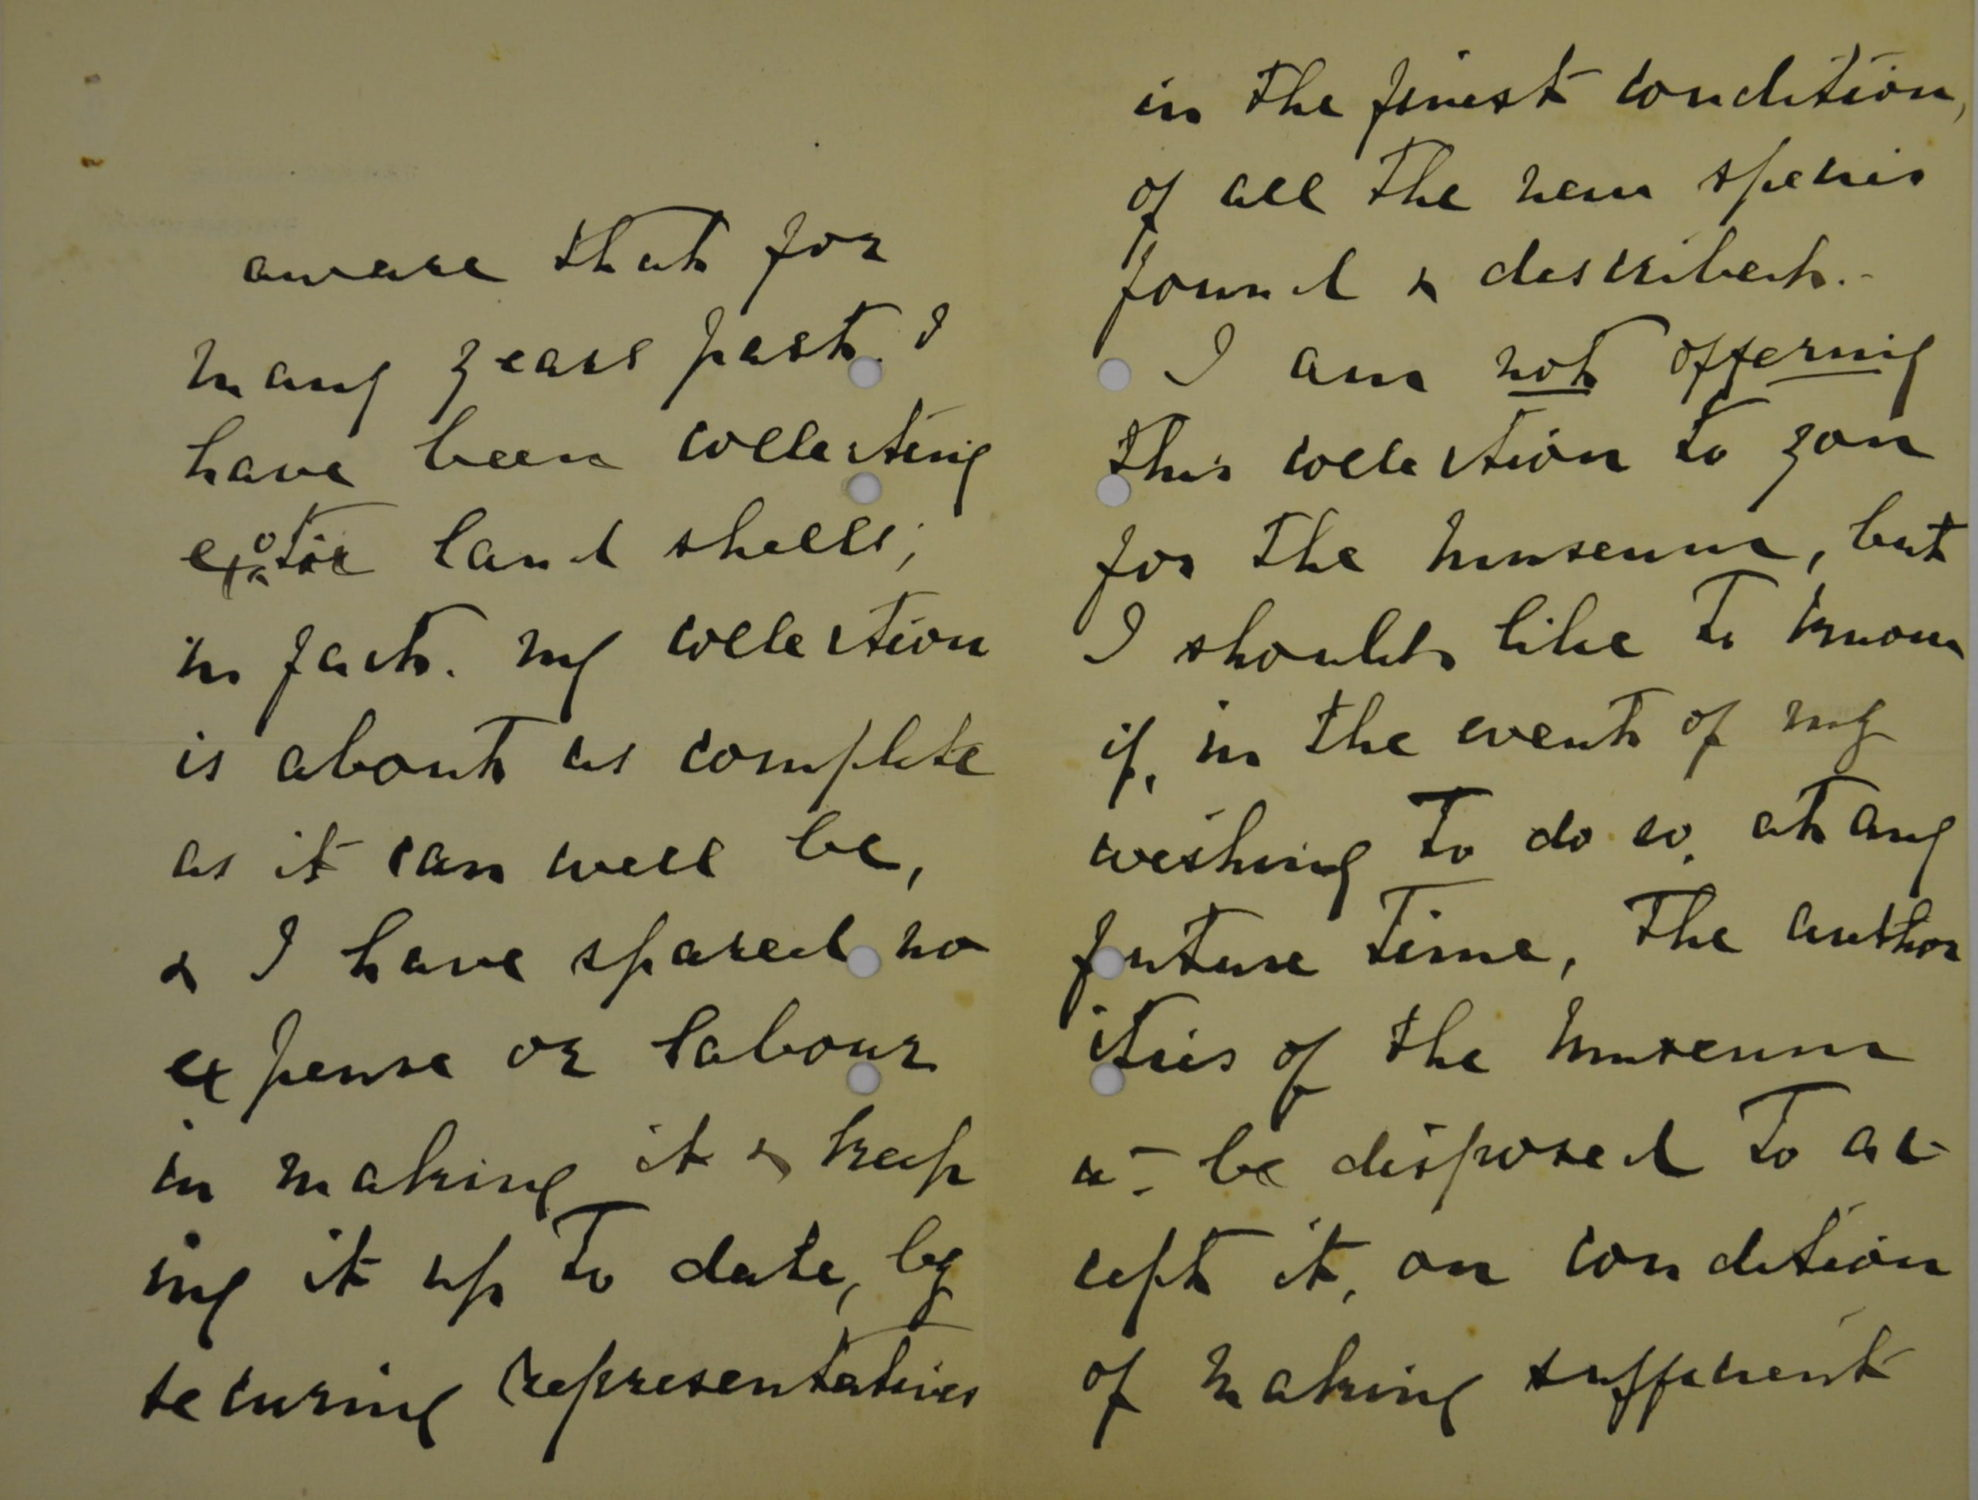 25 July 1902 Letter from Miss Linter to F.R Rowley